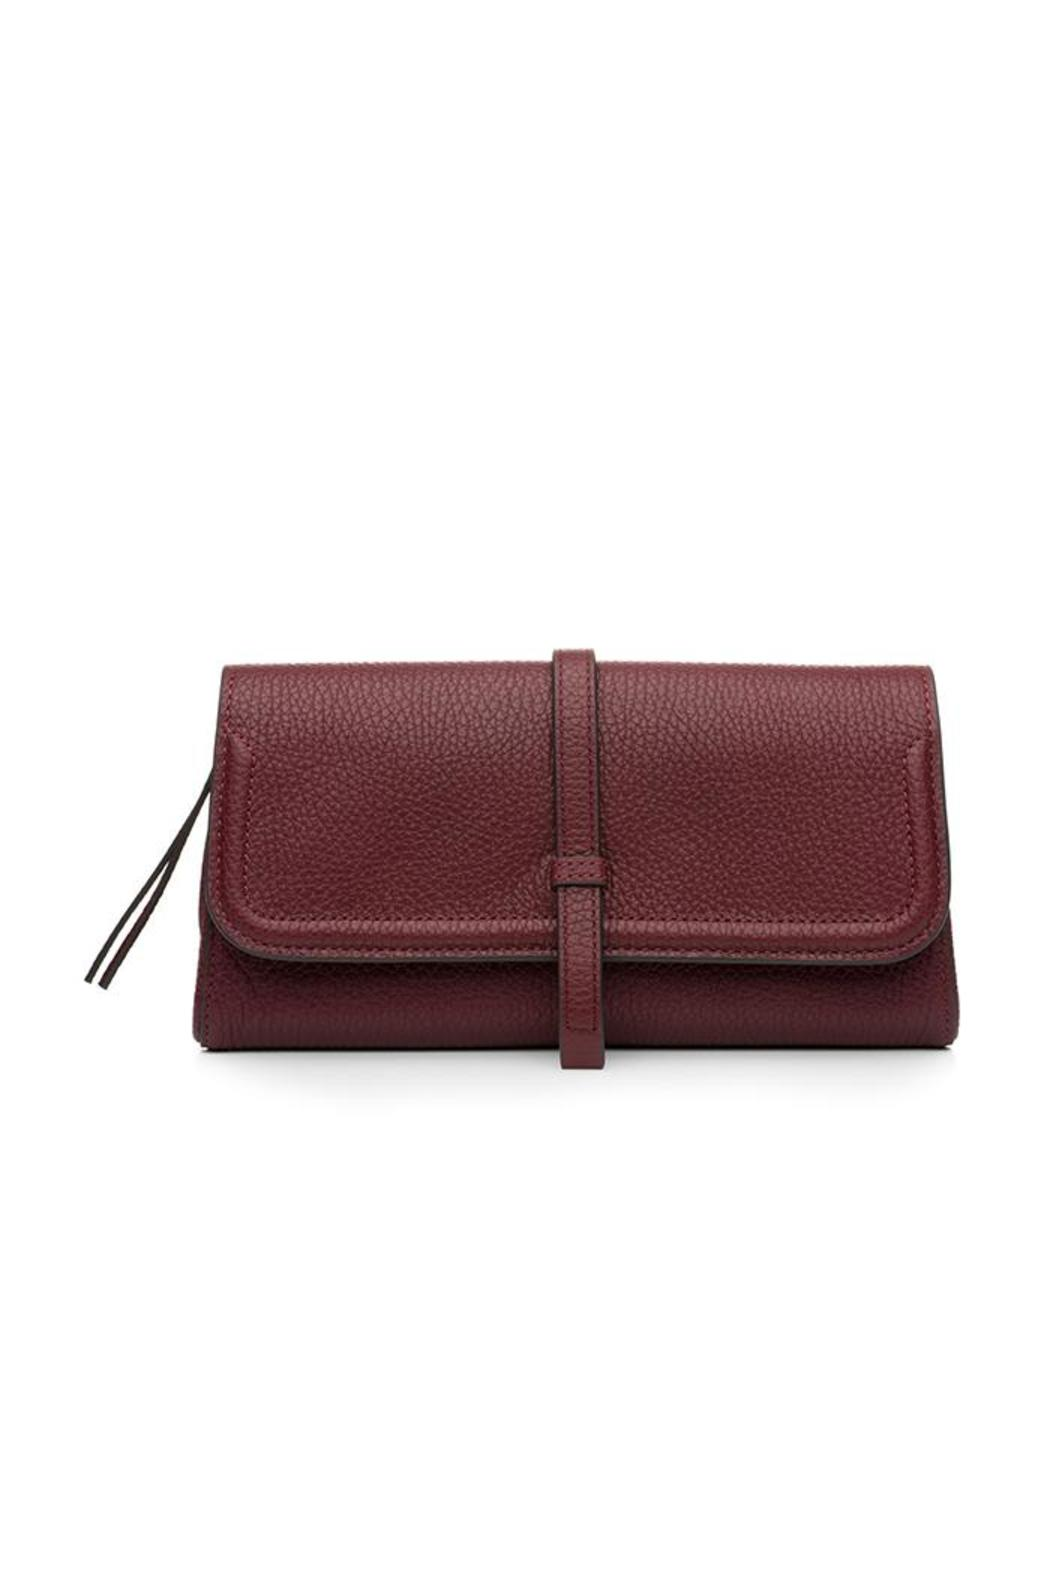 Annabel Ingall Burgundy Charlotte Clutch - Main Image